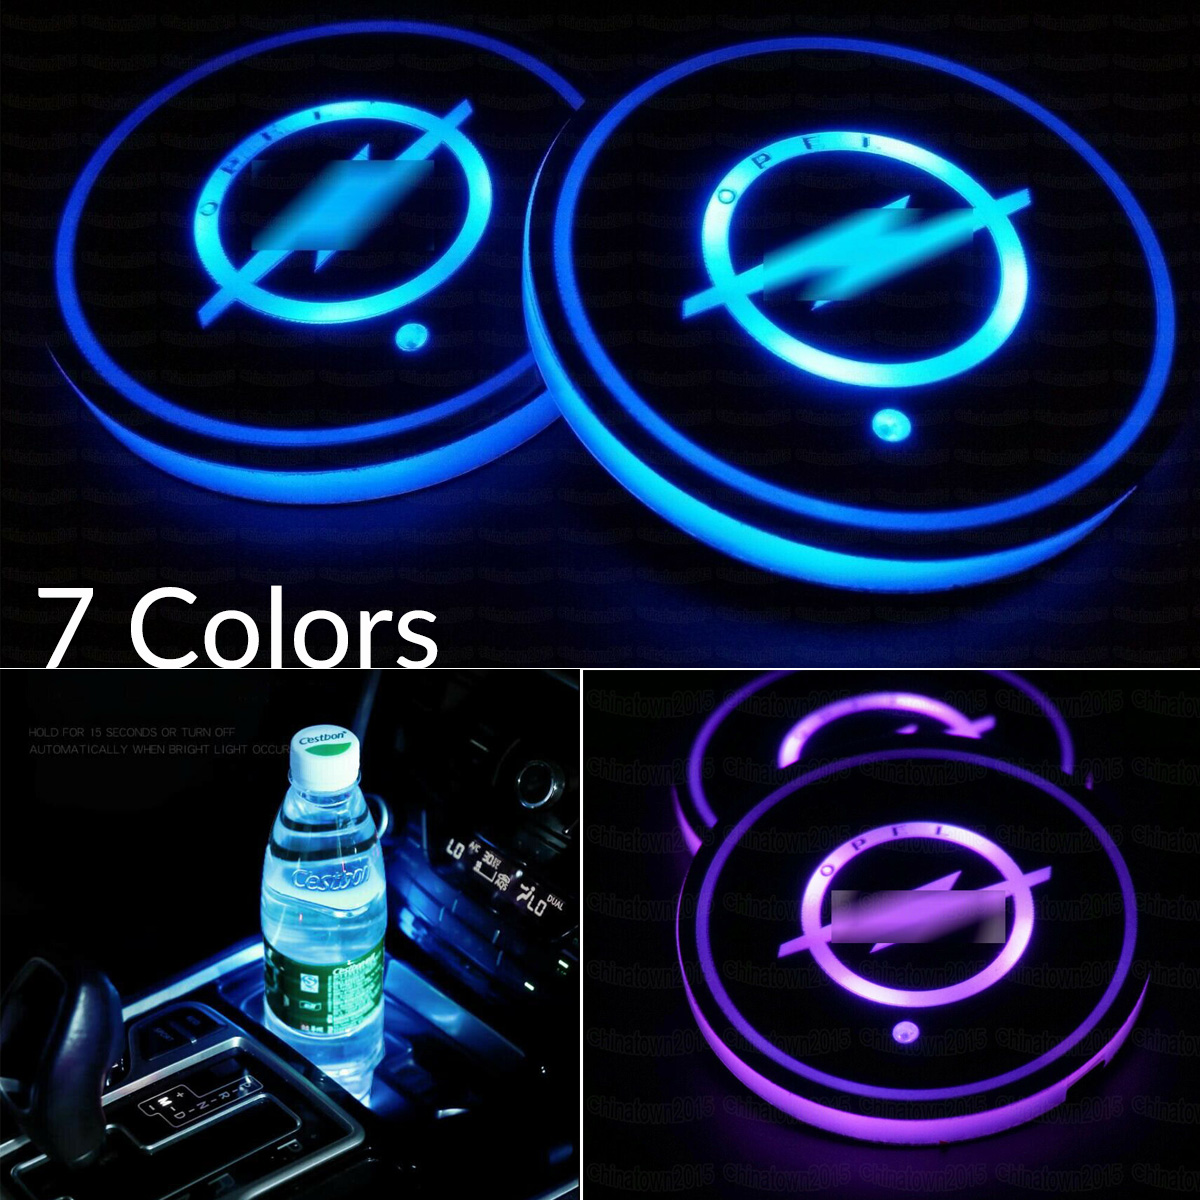 LIMIAND LED Car Logo Cup Holder Pad Back Seat Cup Holders Built-in Vibration /& Light Sensor Automatically Turn On at Dark